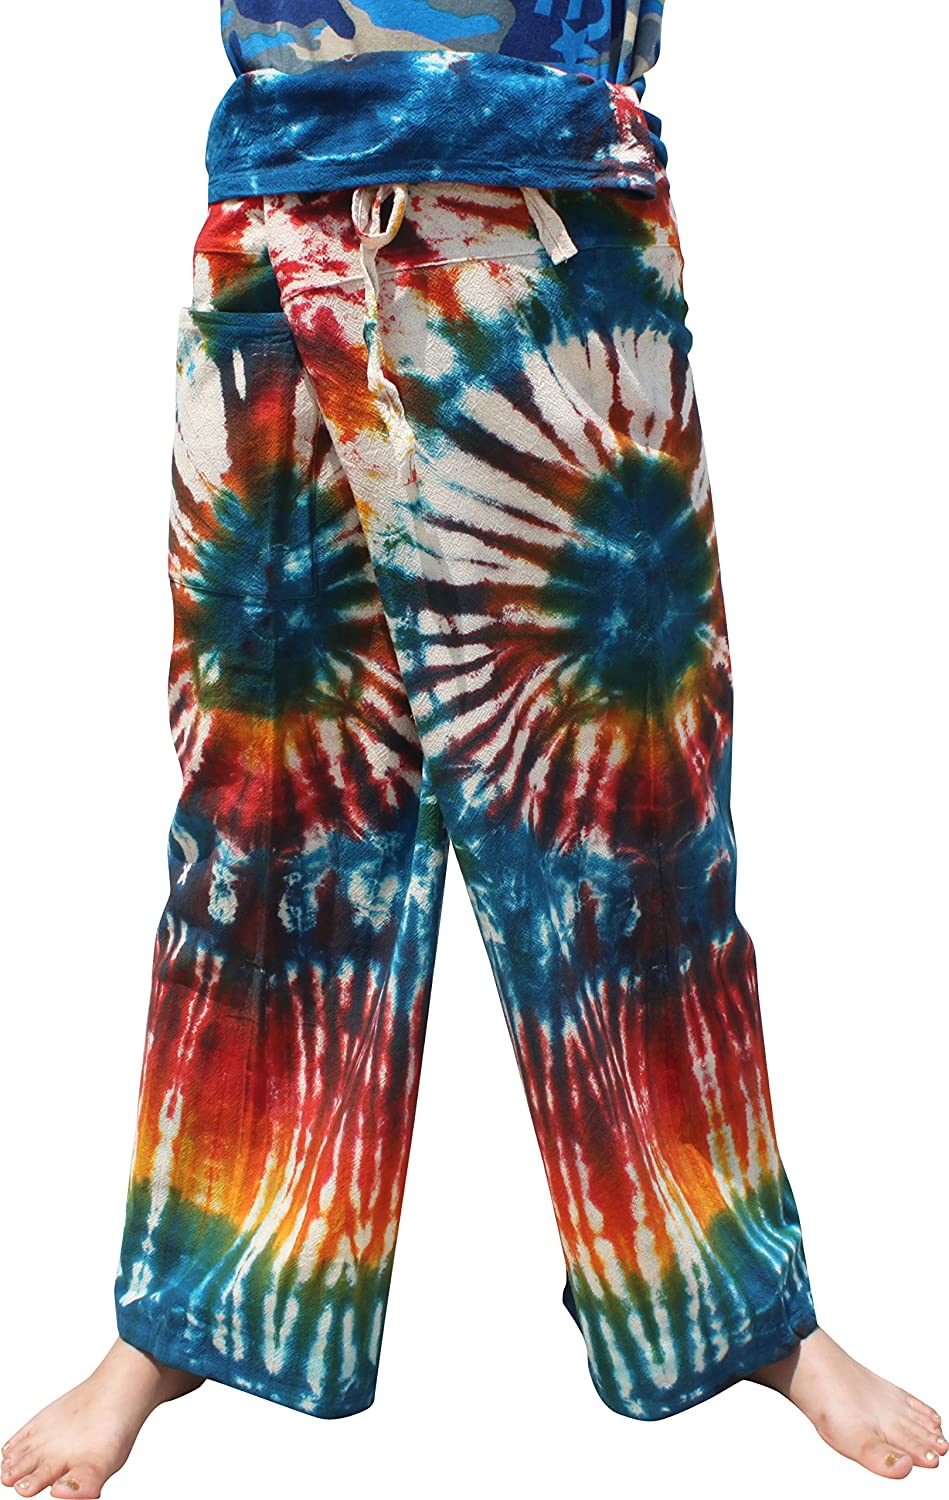 bluee Cream Red RaanPahMuang Thick Muang Cotton Thai Fishermans Pants Vibrant TieDyed Tie Dye